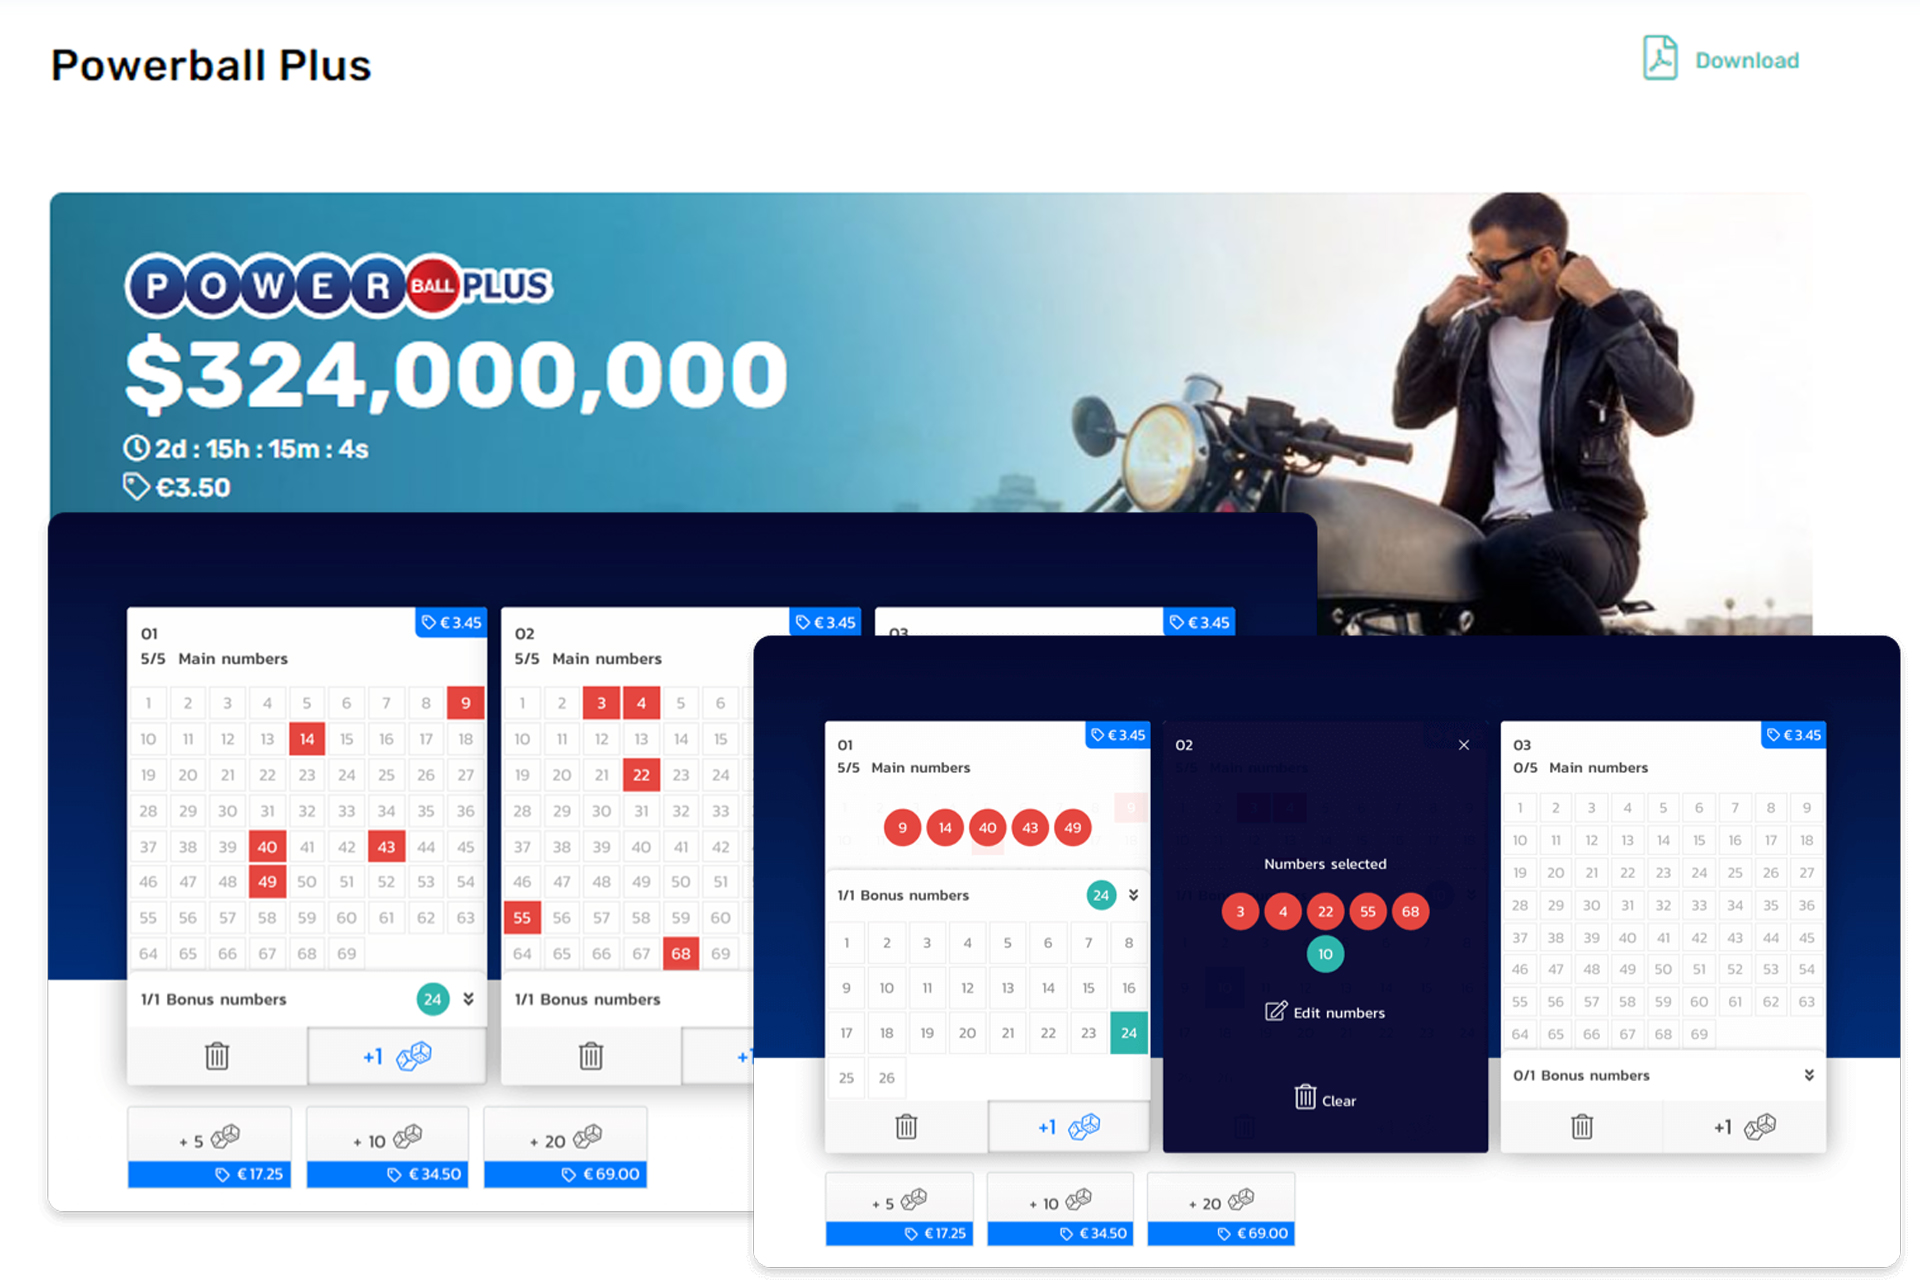 Open the lottery page, buy a ticket and choose numbers.